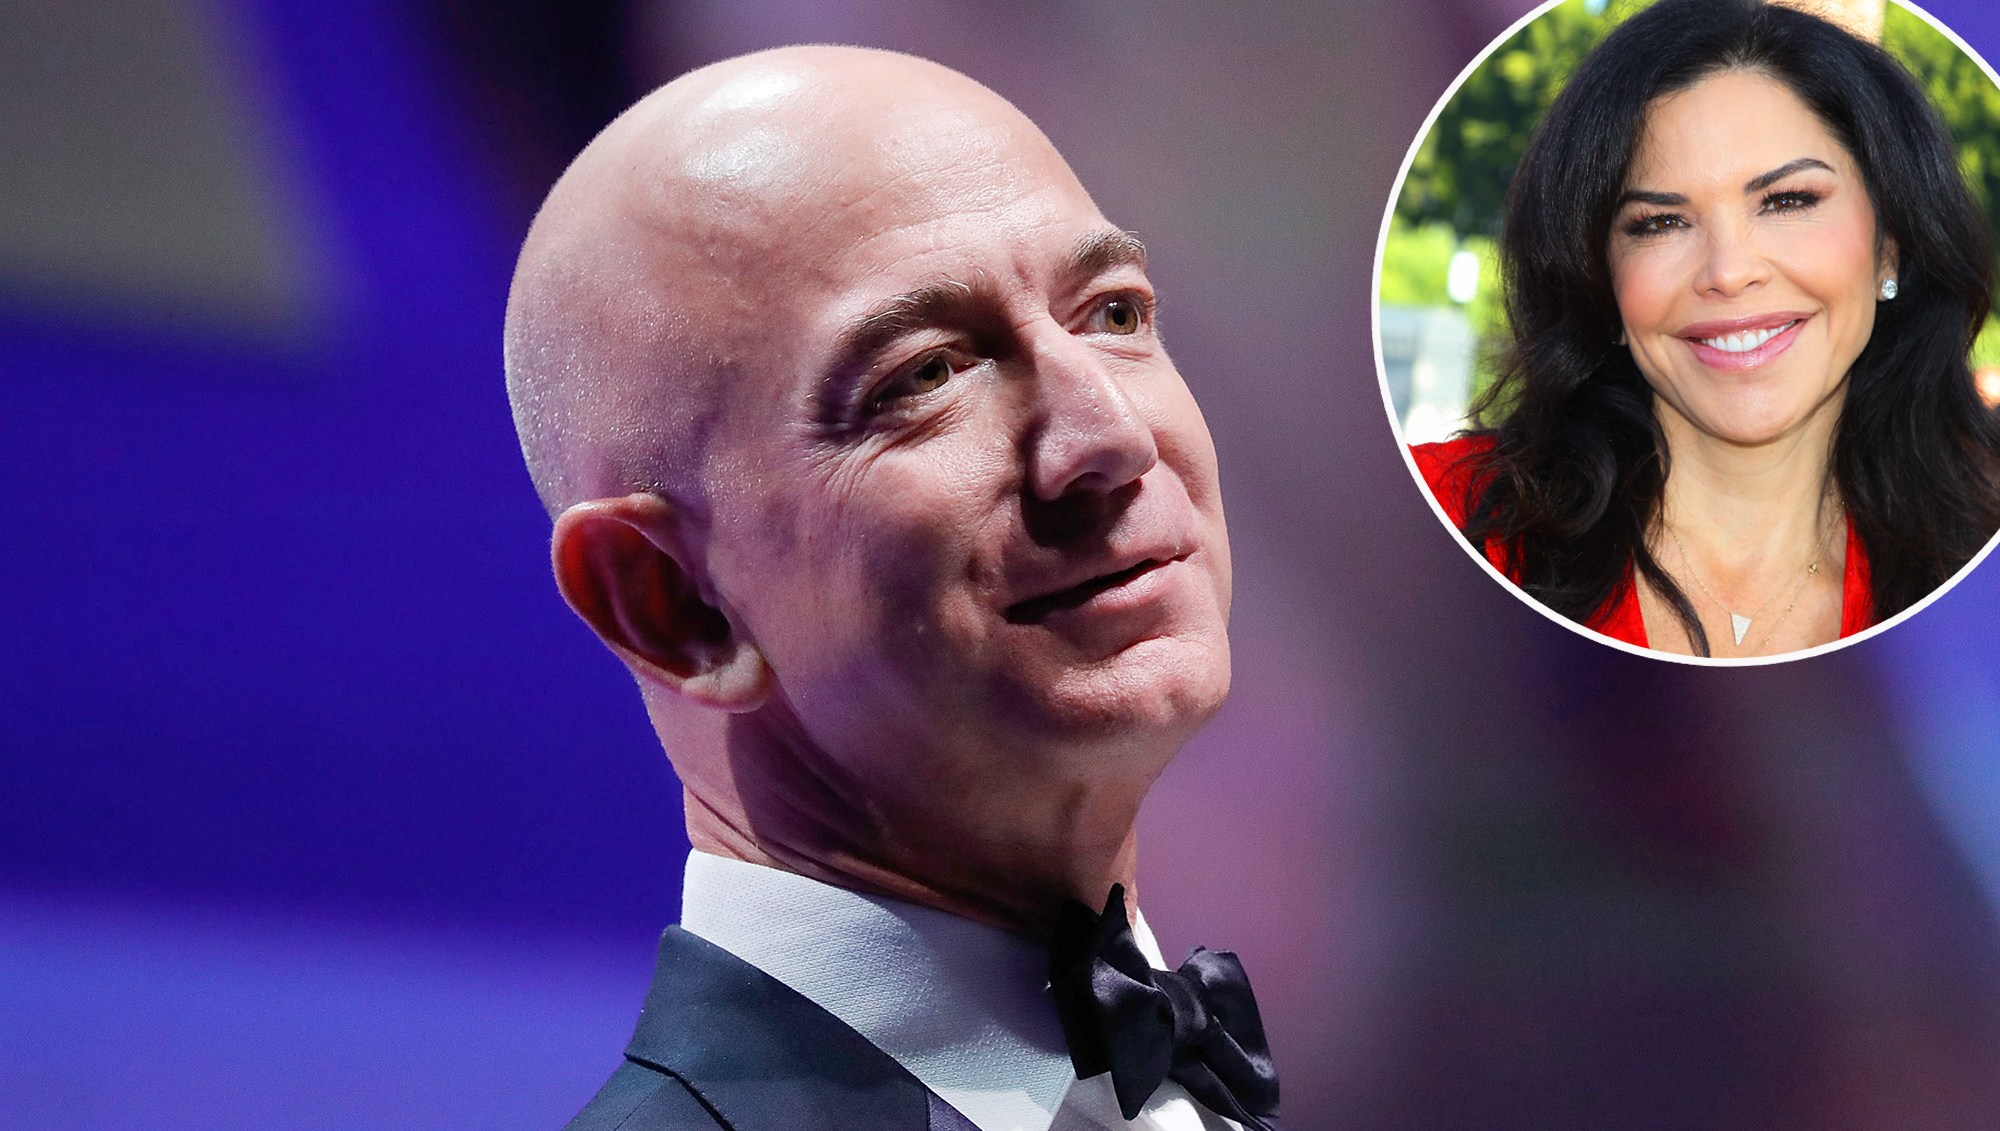 eff Bezos' Affair With Lauren Sanchez Has Been a Professional Nightmare for Him